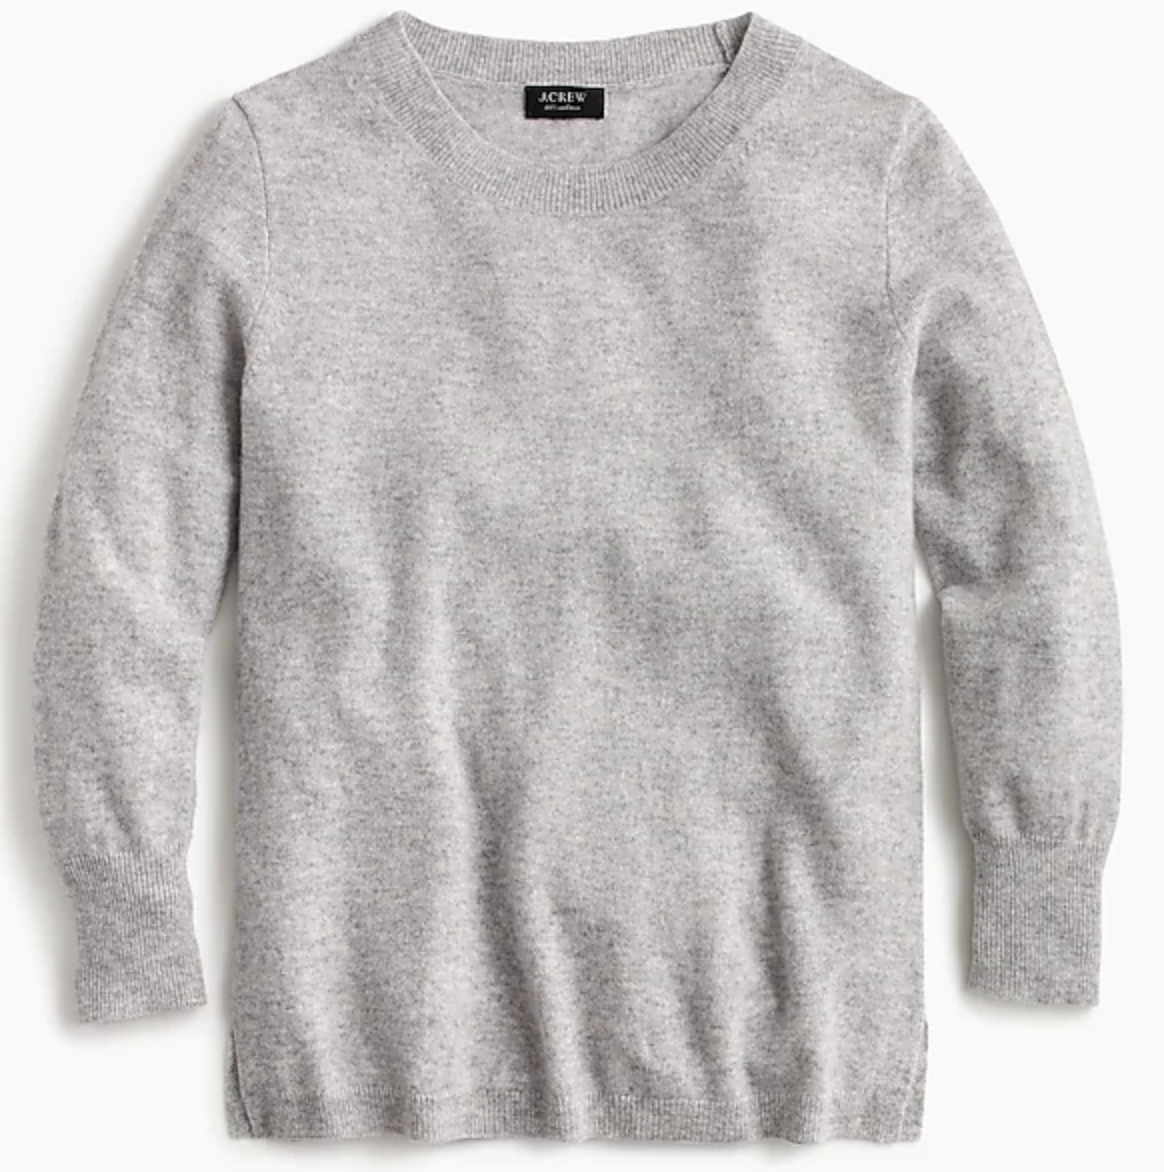 Best Cashmere Sweaters for Every Budget | Crew neck sweater